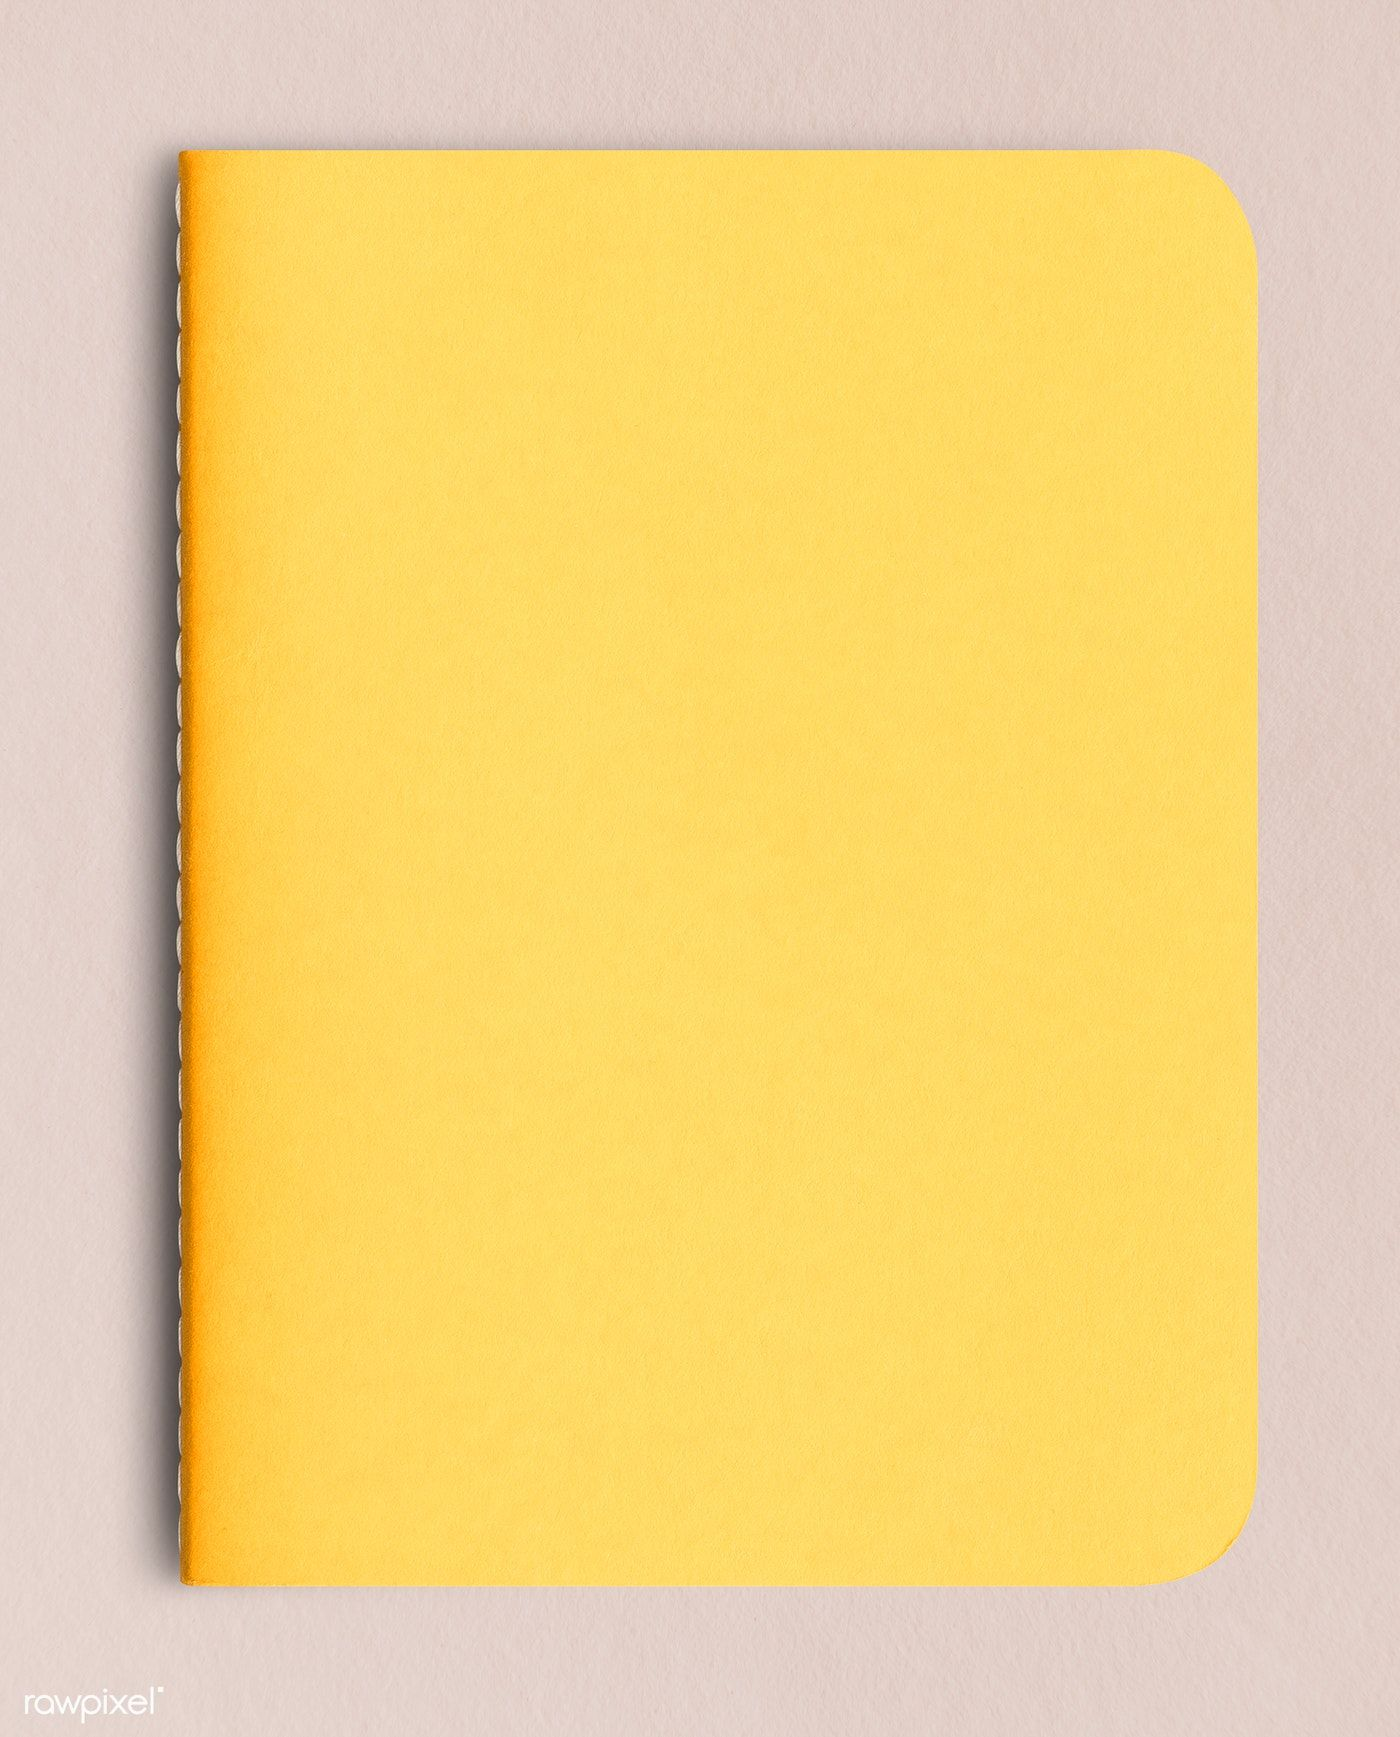 Download Premium Psd Of Blank Yellow Book Cover Mockup 1202131 Book Cover Mockup Book Cover Blank Book Cover